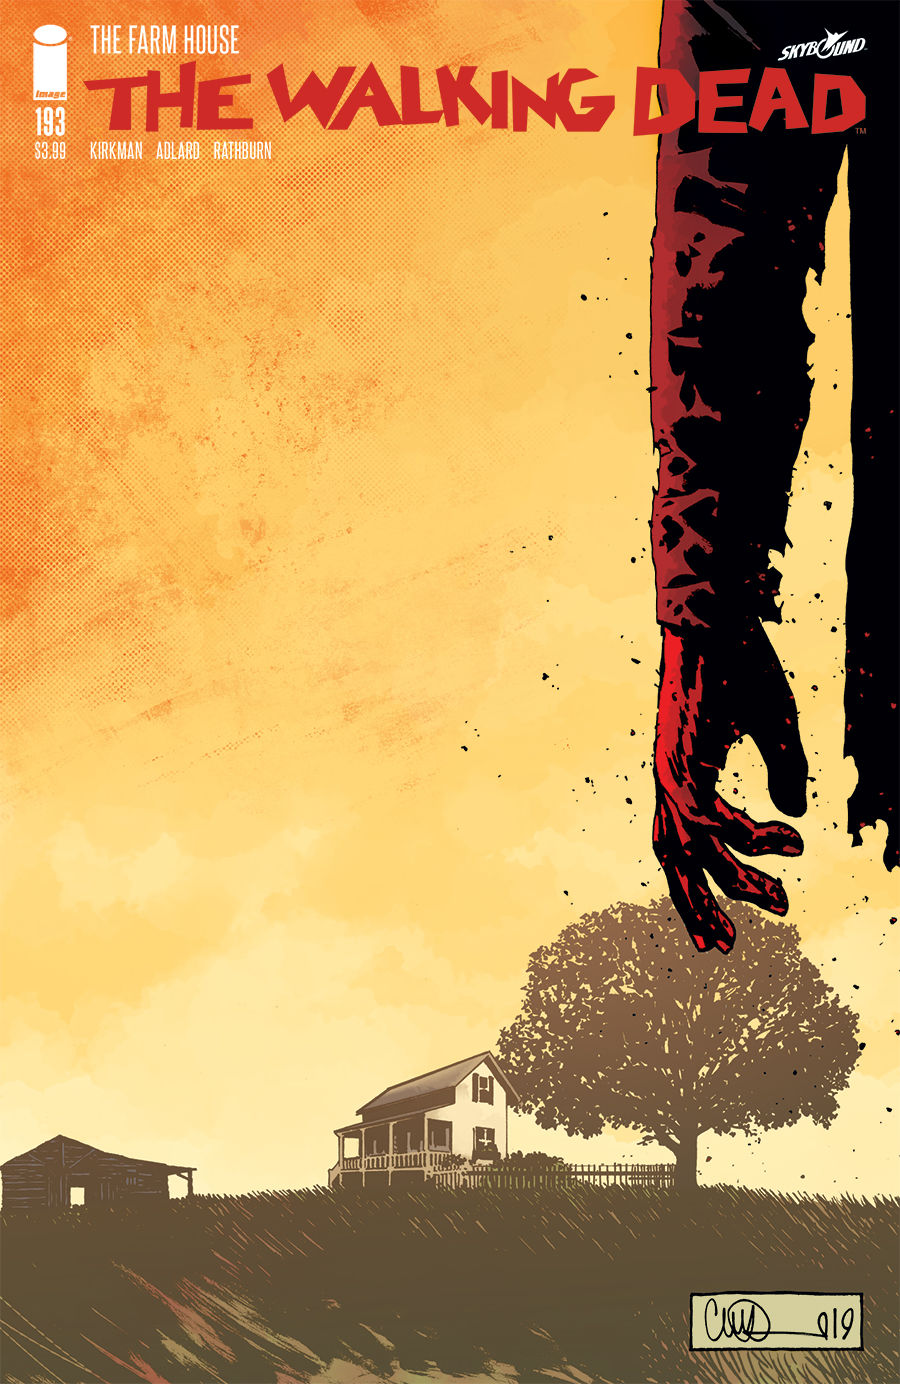 Cover of The Walking Dead 193 by Robert Kirkman, Charlie Adlard and Cliff Rathburn